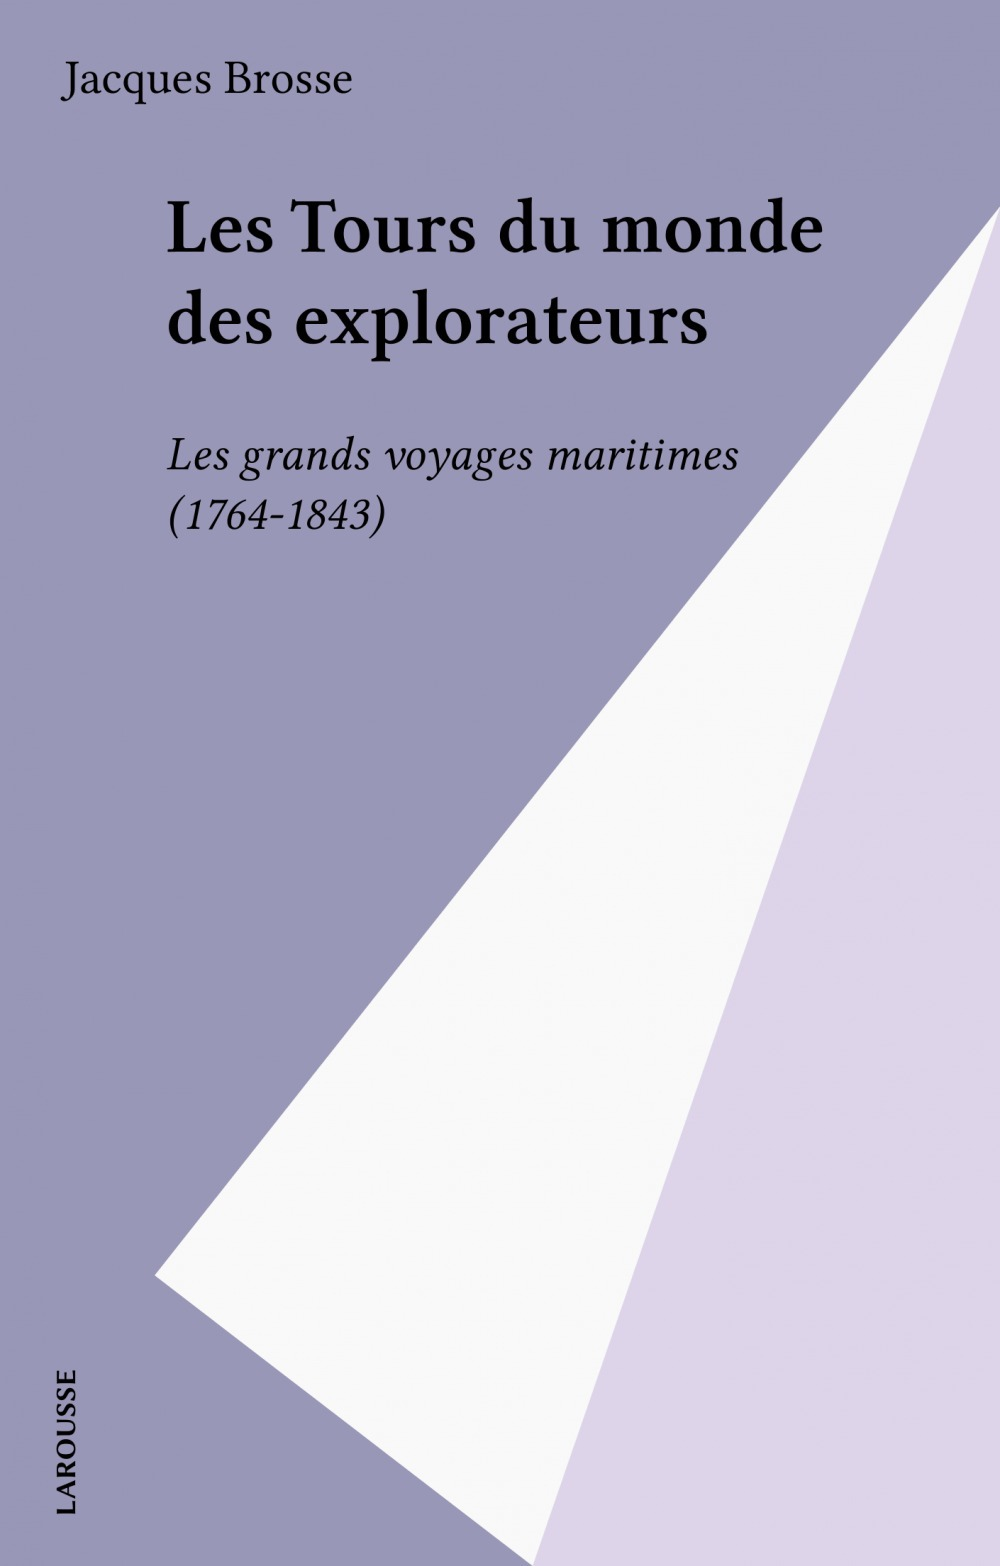 Le tour du monde des explorateurs